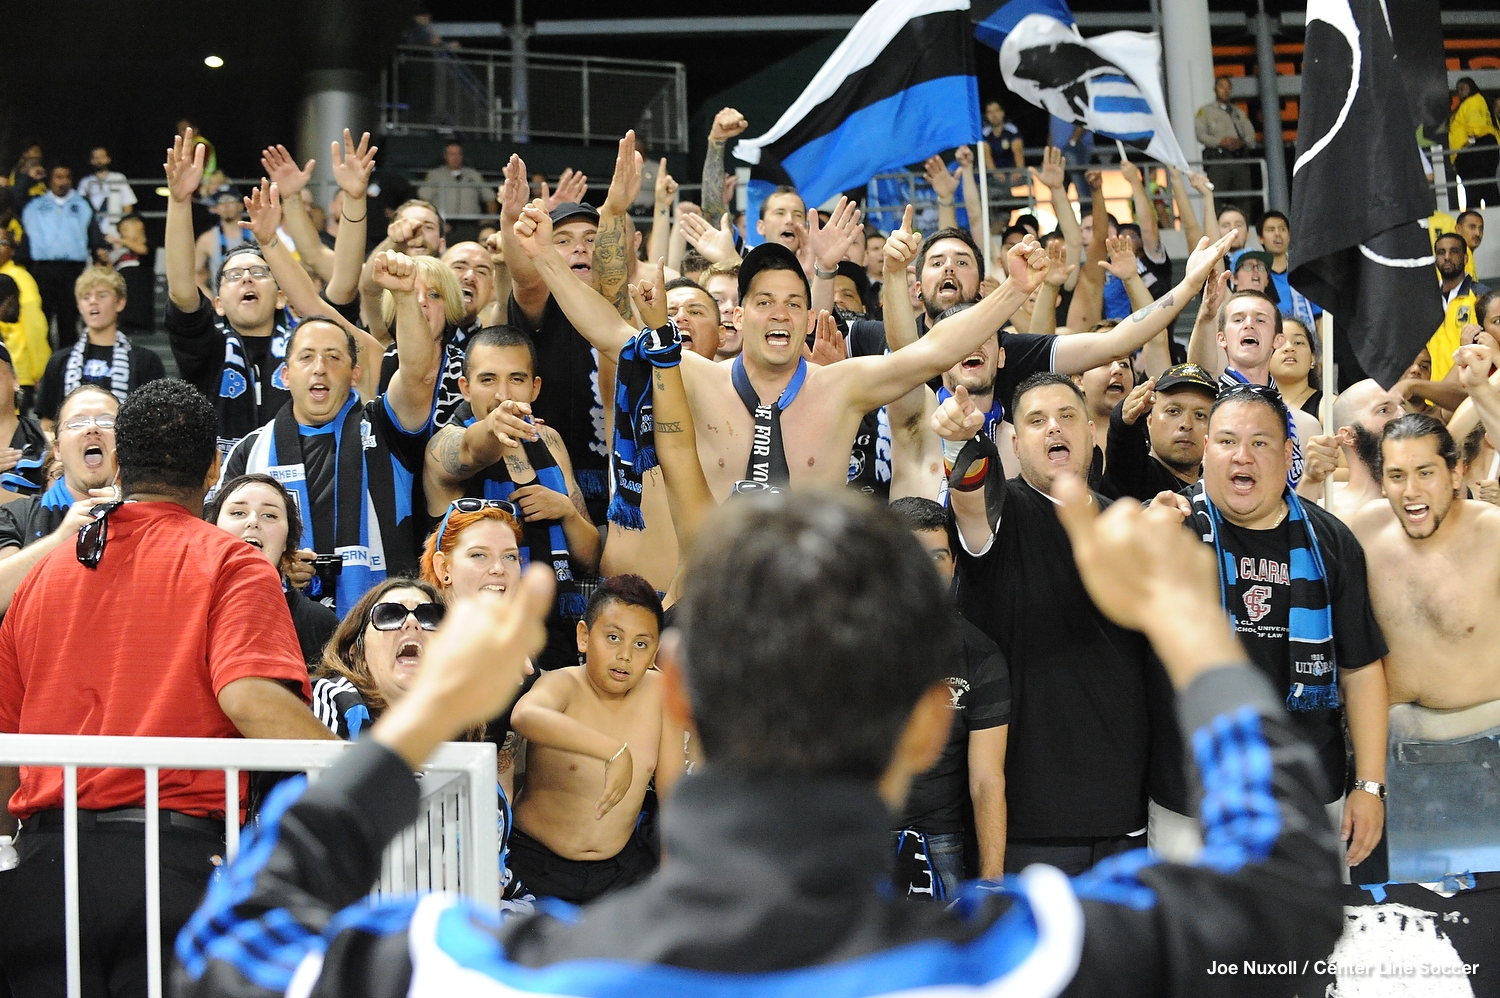 Wondo thanks the Ultras after a 2-2 tie in enemy territory